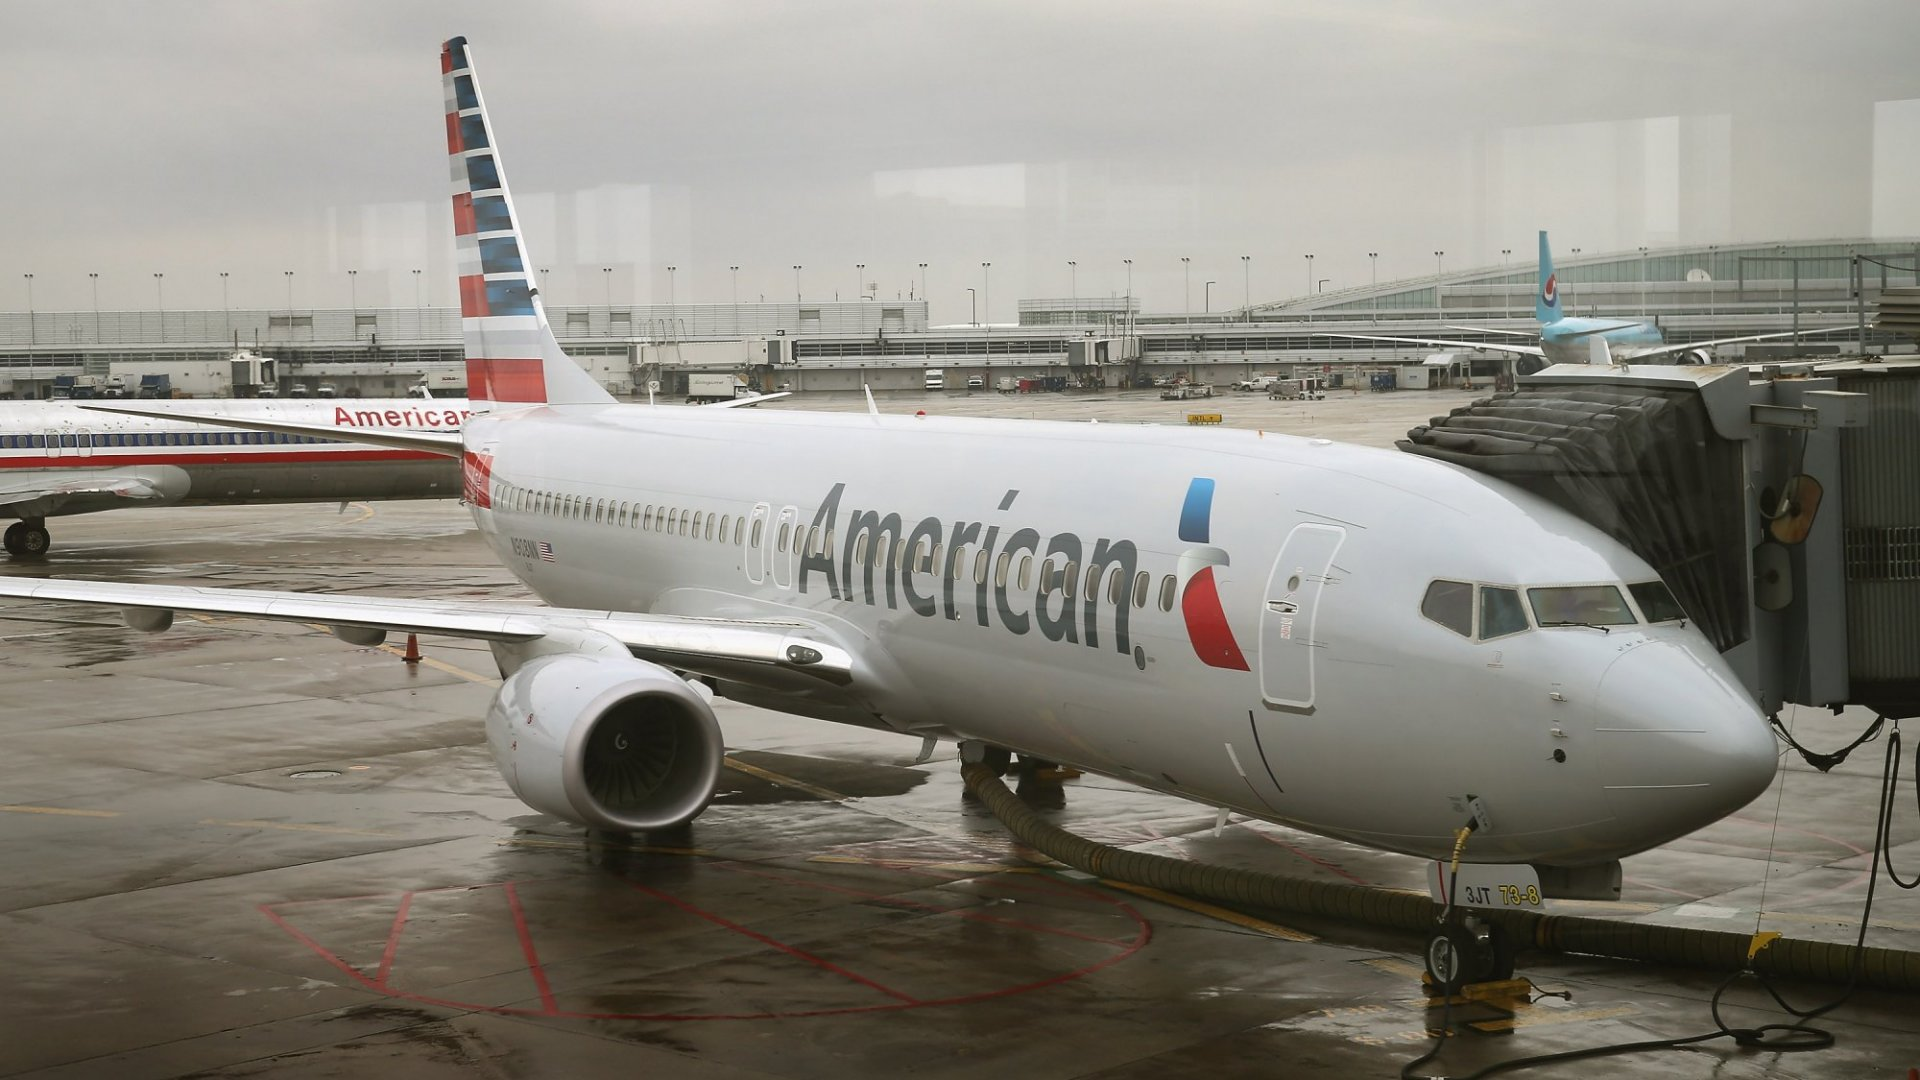 American Airlines CEO: More Crowded Planes Are 'Much More Comfortable'